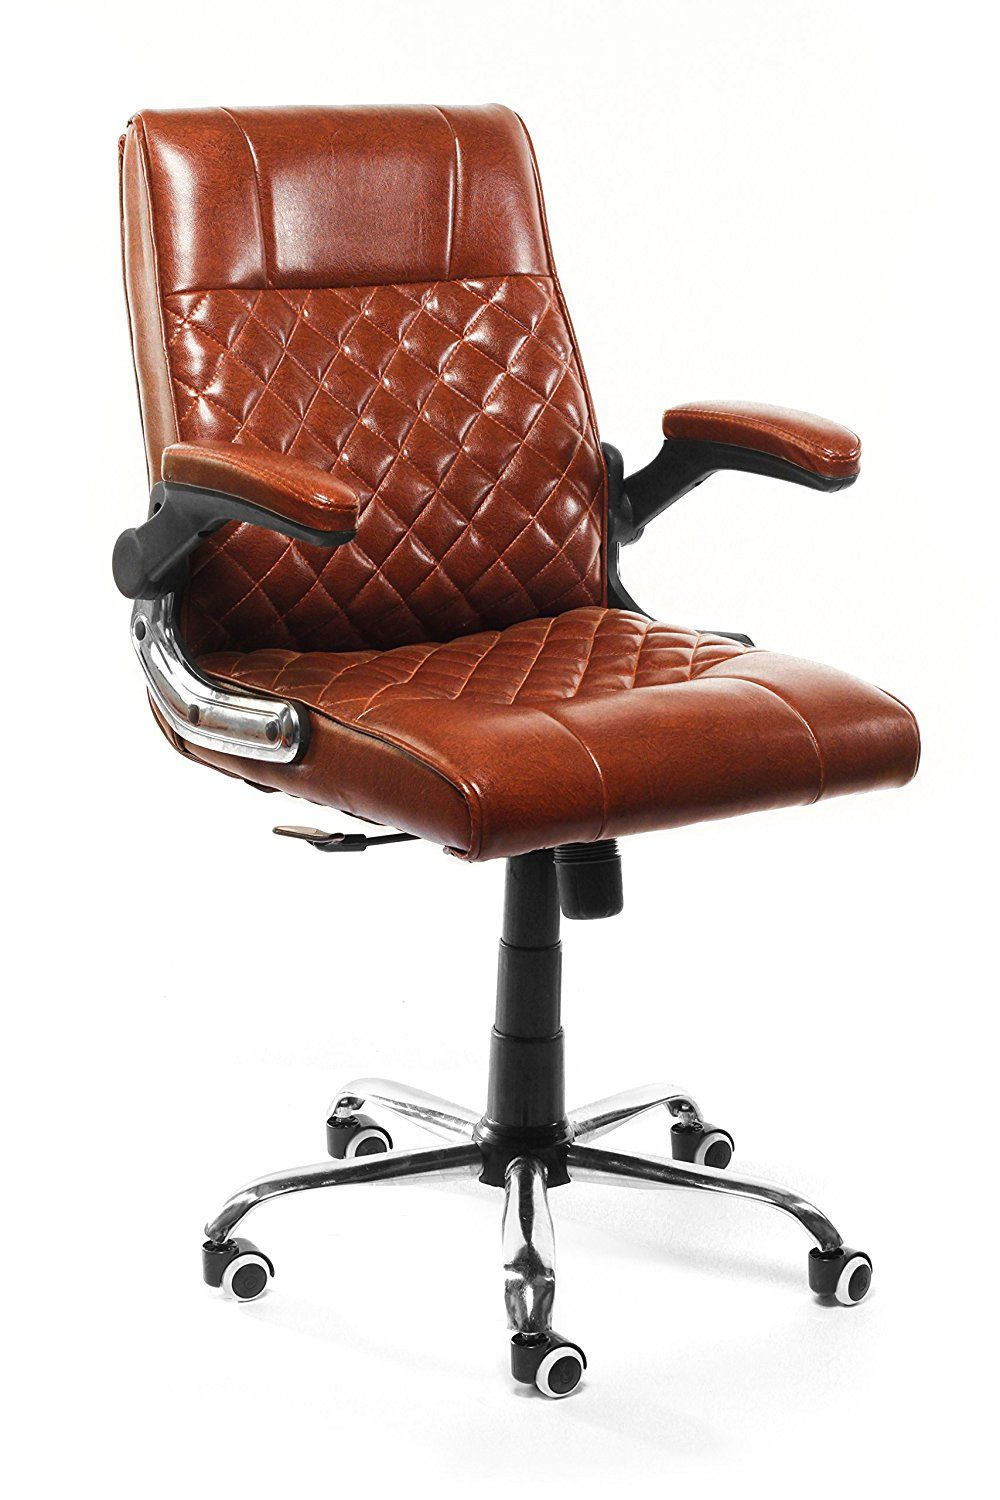 Furniease® Low Back Height And Arm Rest Adjustable Office Executive Chair  In Brown Finish